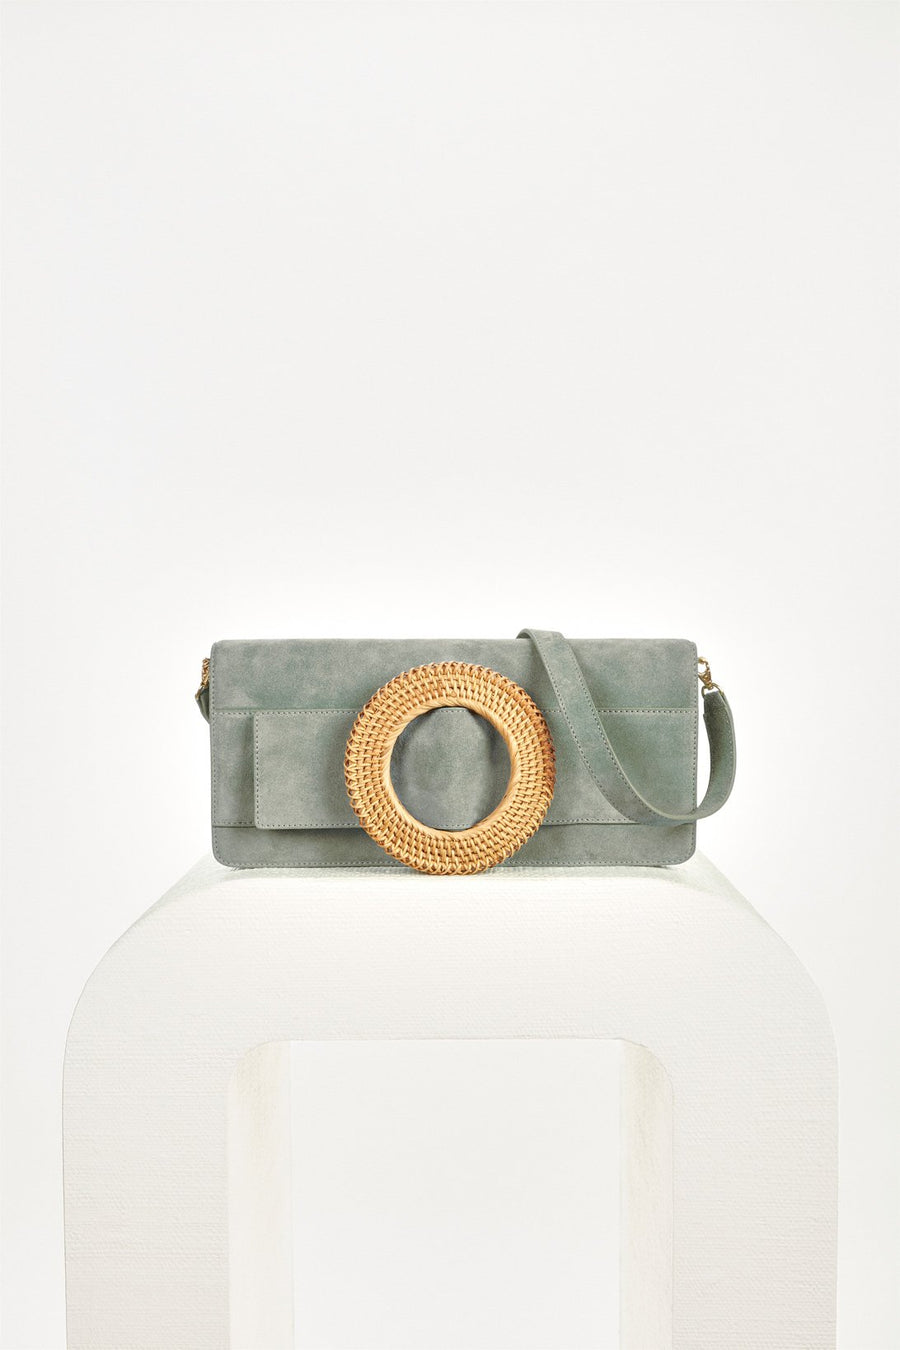 GEMMA SHOULDER BAG - SEASPRAY